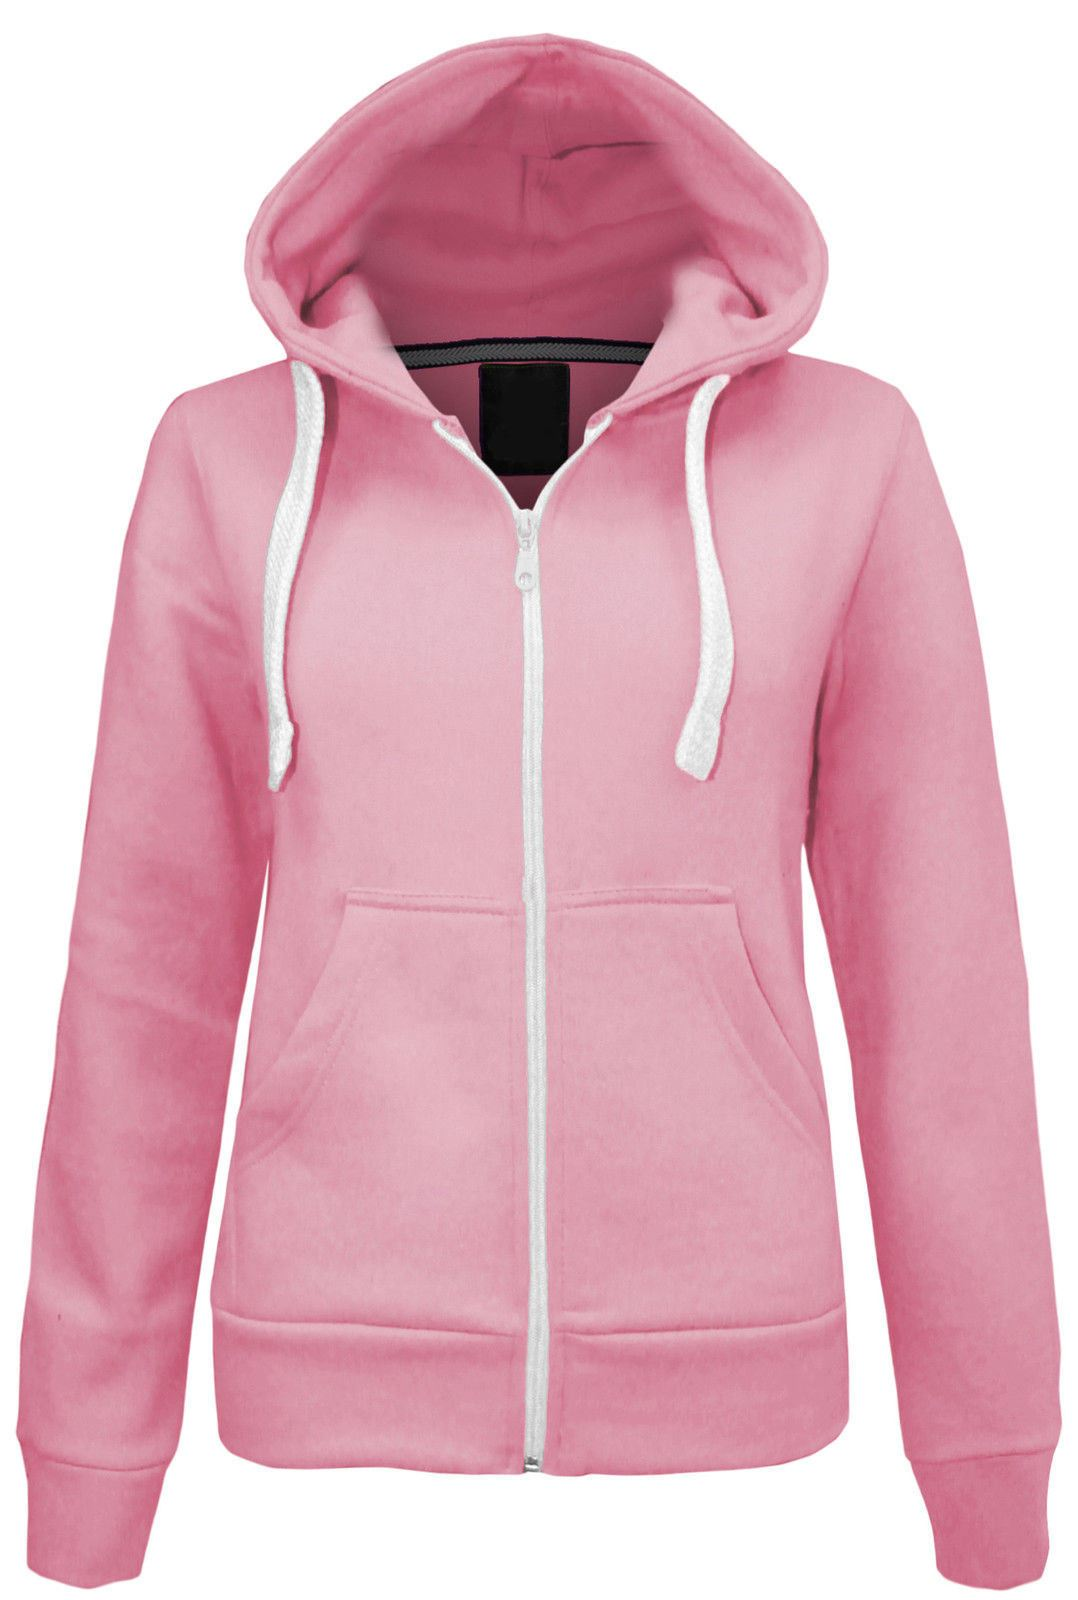 Womens Pink Sweatshirt | Fashion Ql